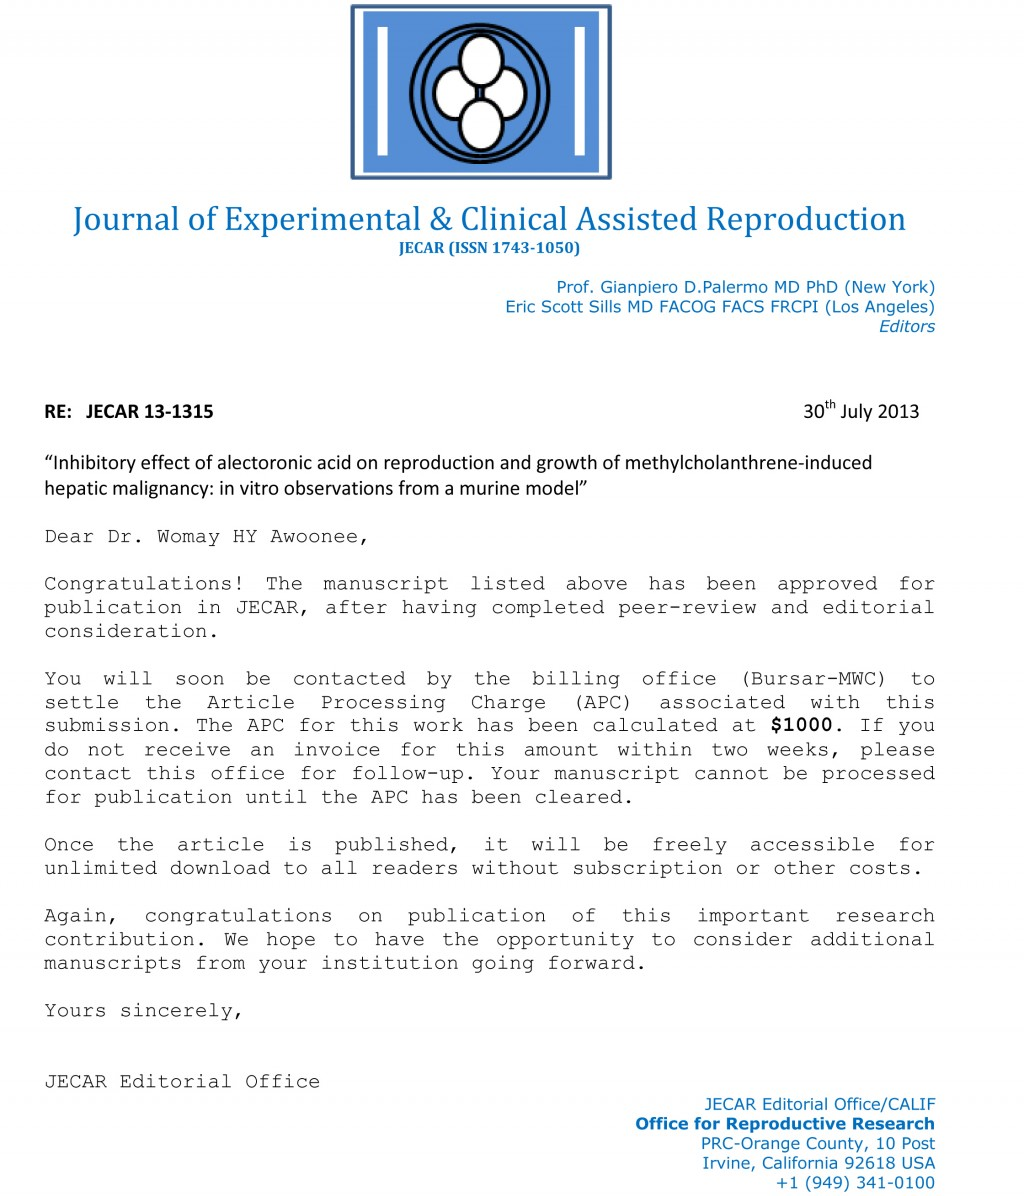 007 Research Paper Jecar Acceptance Enl How To Publish Without Striking A Professor Large